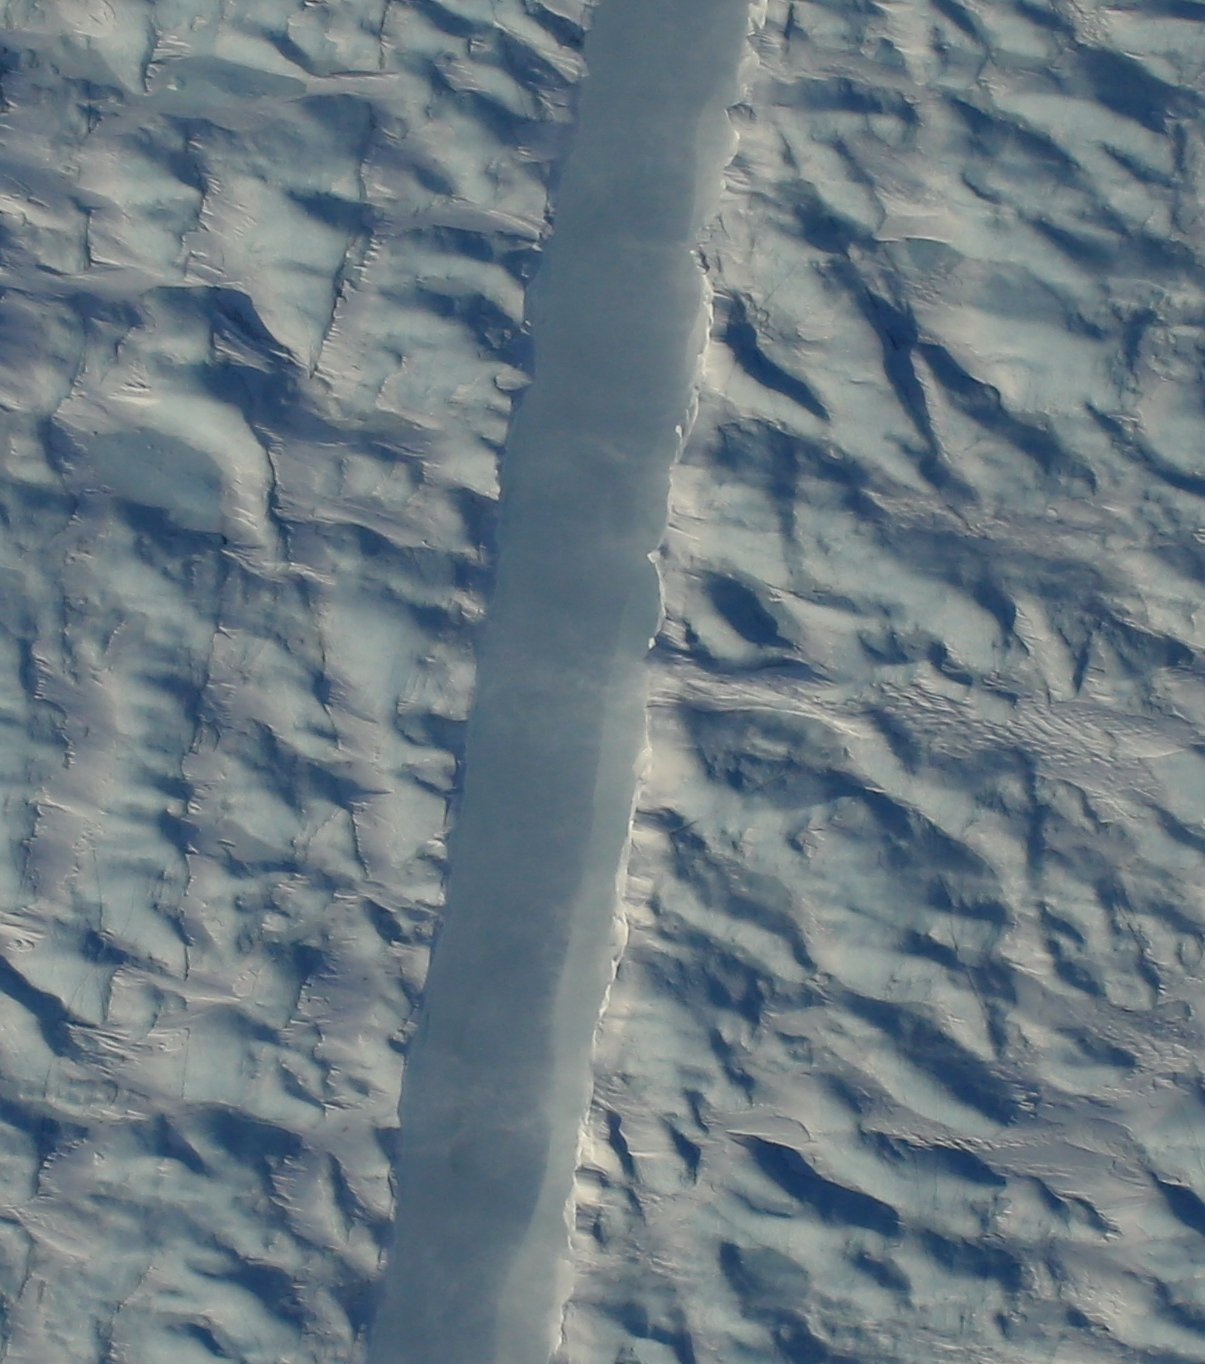 New satellite photos reveal that one of Greenland's largest glaciers may have an unexpected new crack, the Washington Post reported.